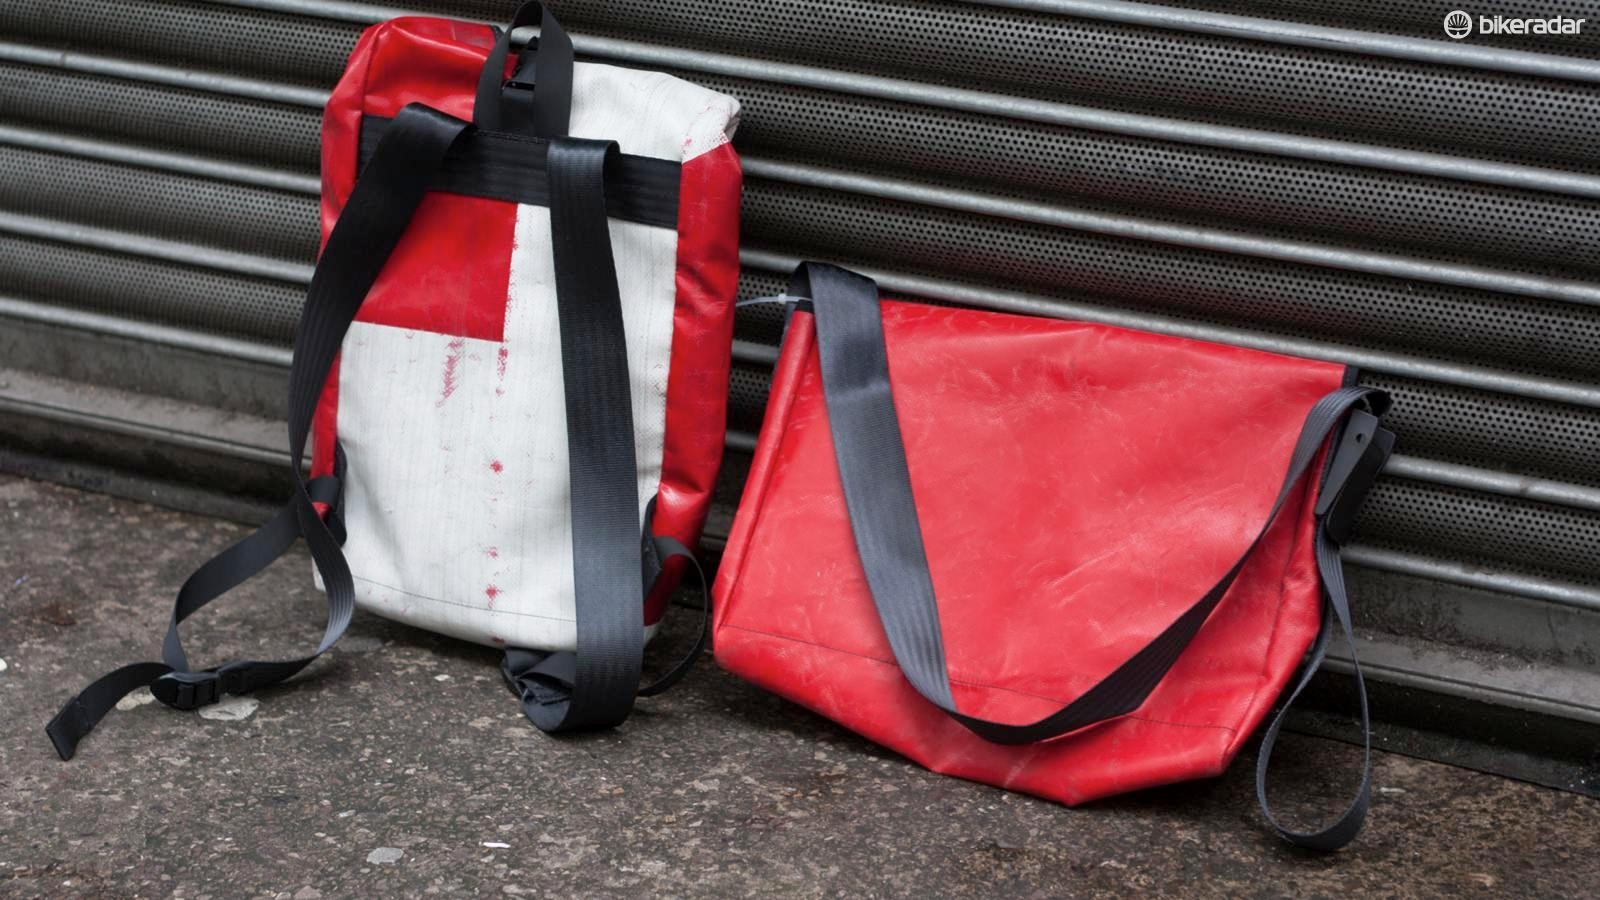 Built for the urban jungle, M-24's Jerrycan backpack and Chassis messenger bag